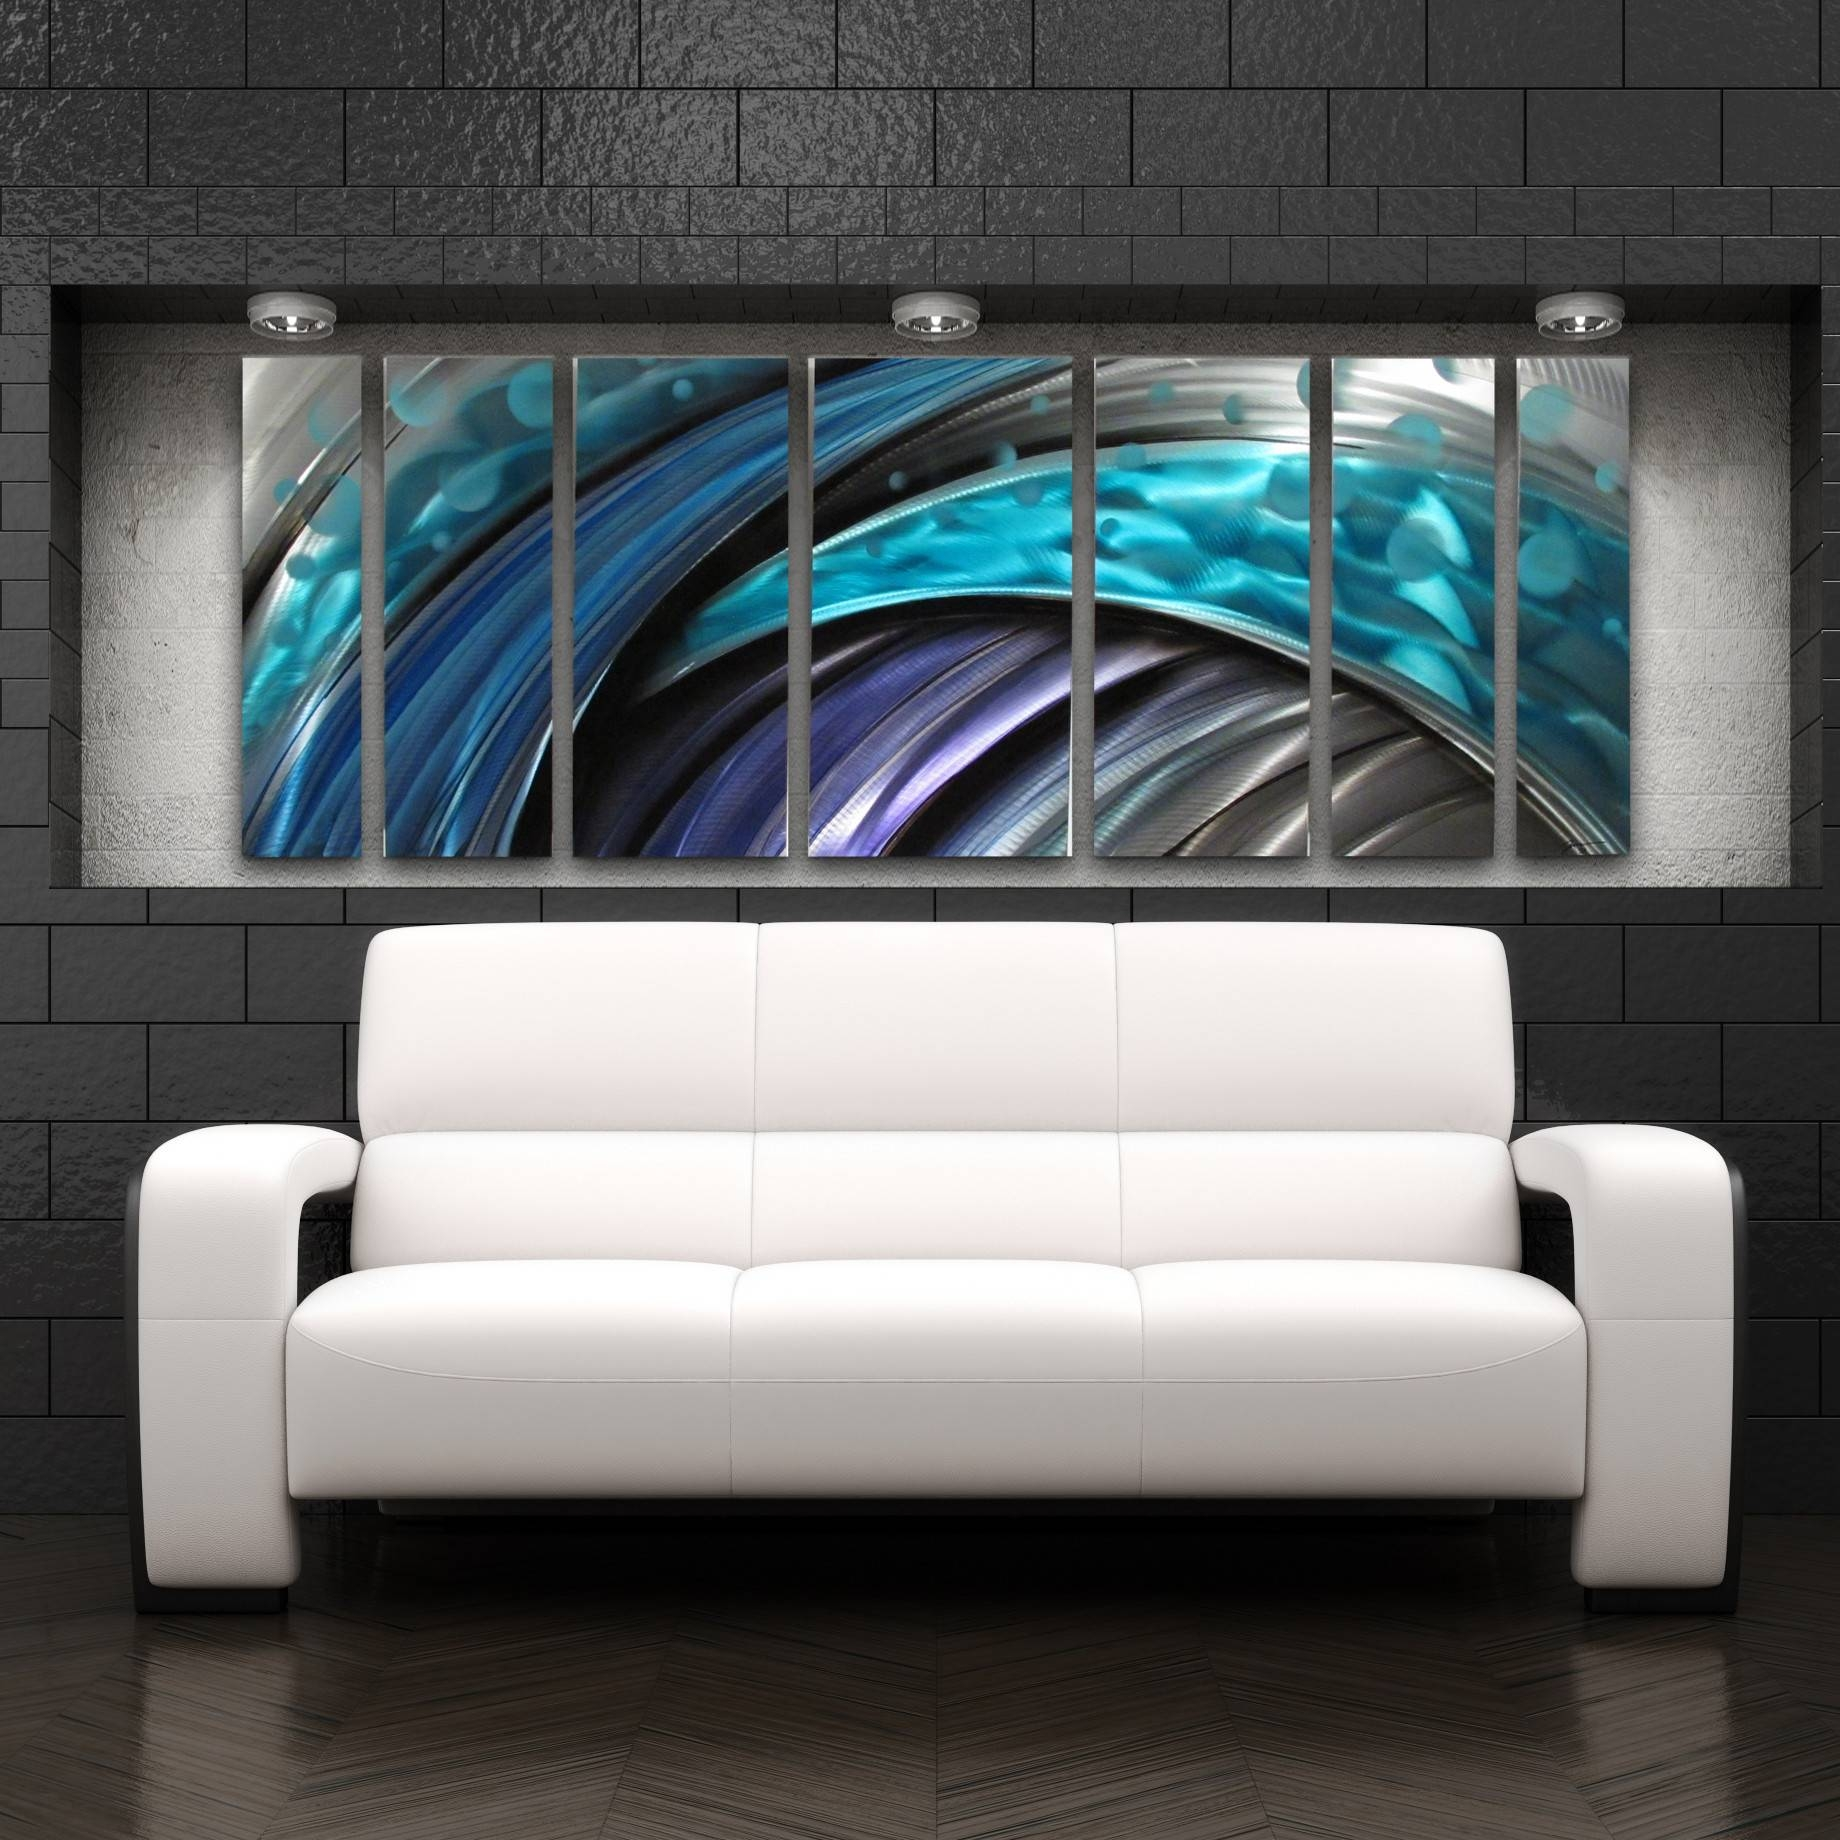 Unbelievable Large Modern Wall Art Excellent Ideas Large With Most Up To Date Large Contemporary Wall Art (View 18 of 20)